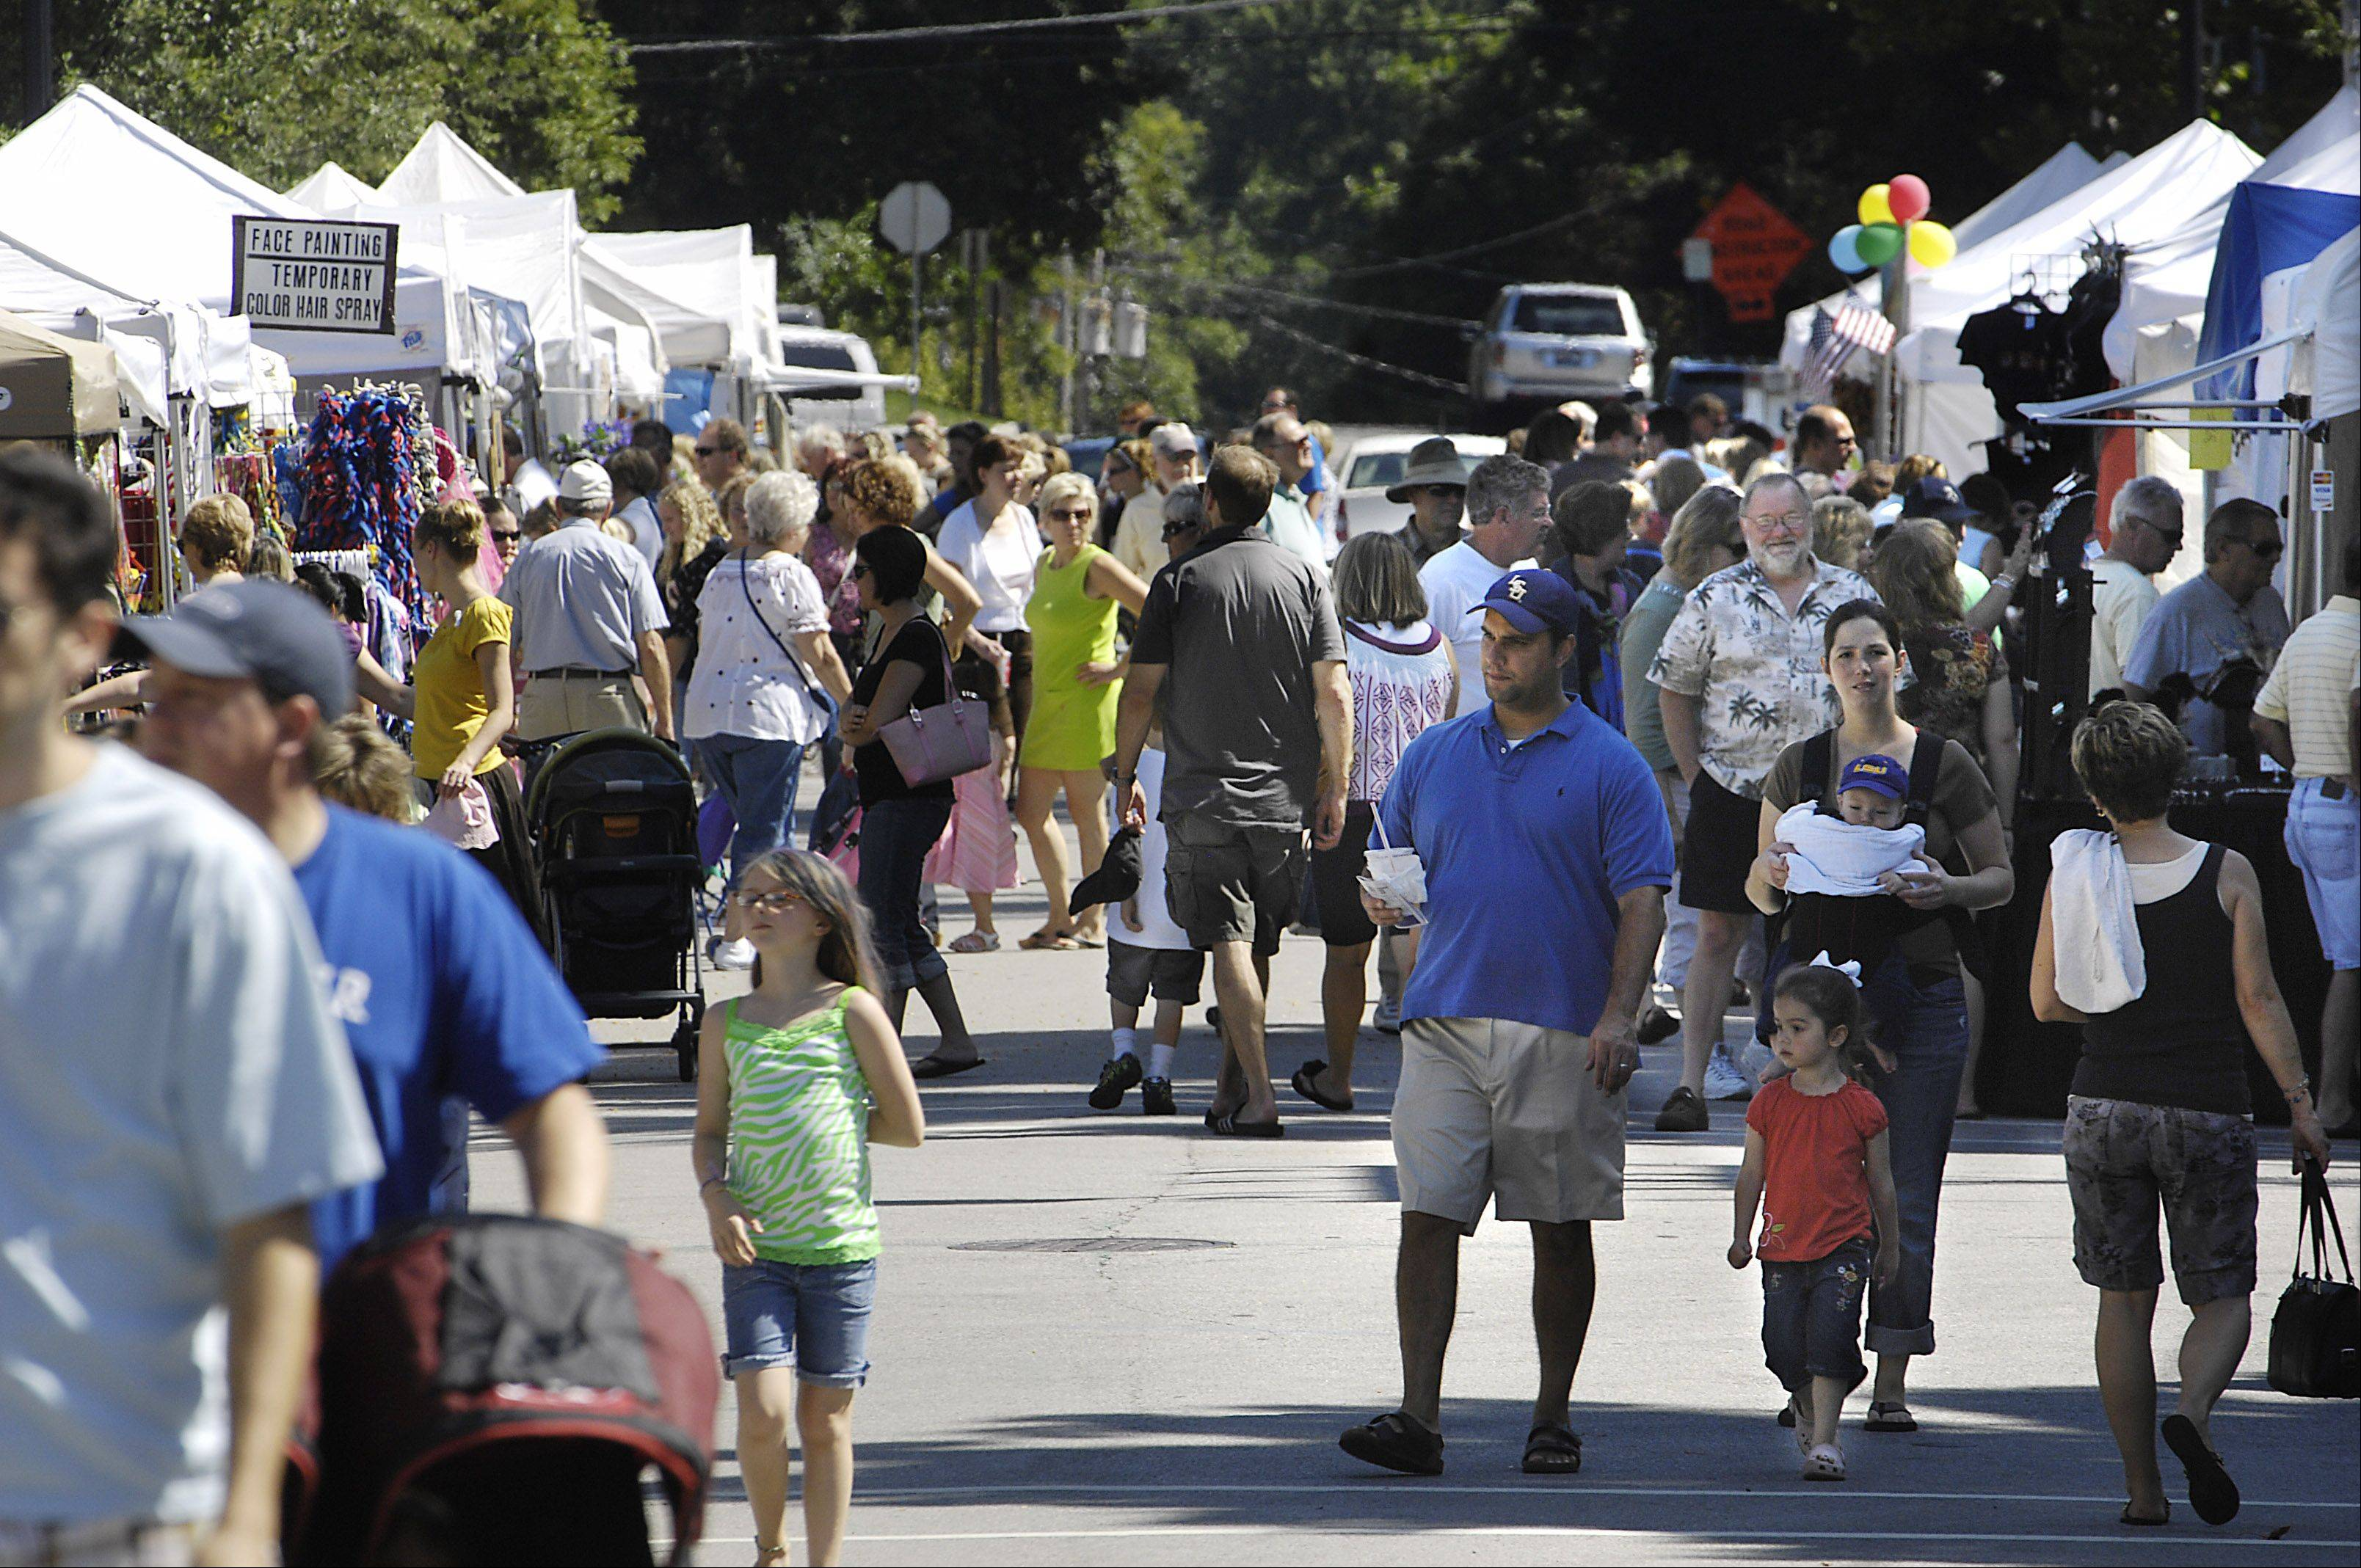 Geneva's Festival of the Vine always draws a good crowd for the food and wine sampling, entertainment and arts and crafts show.